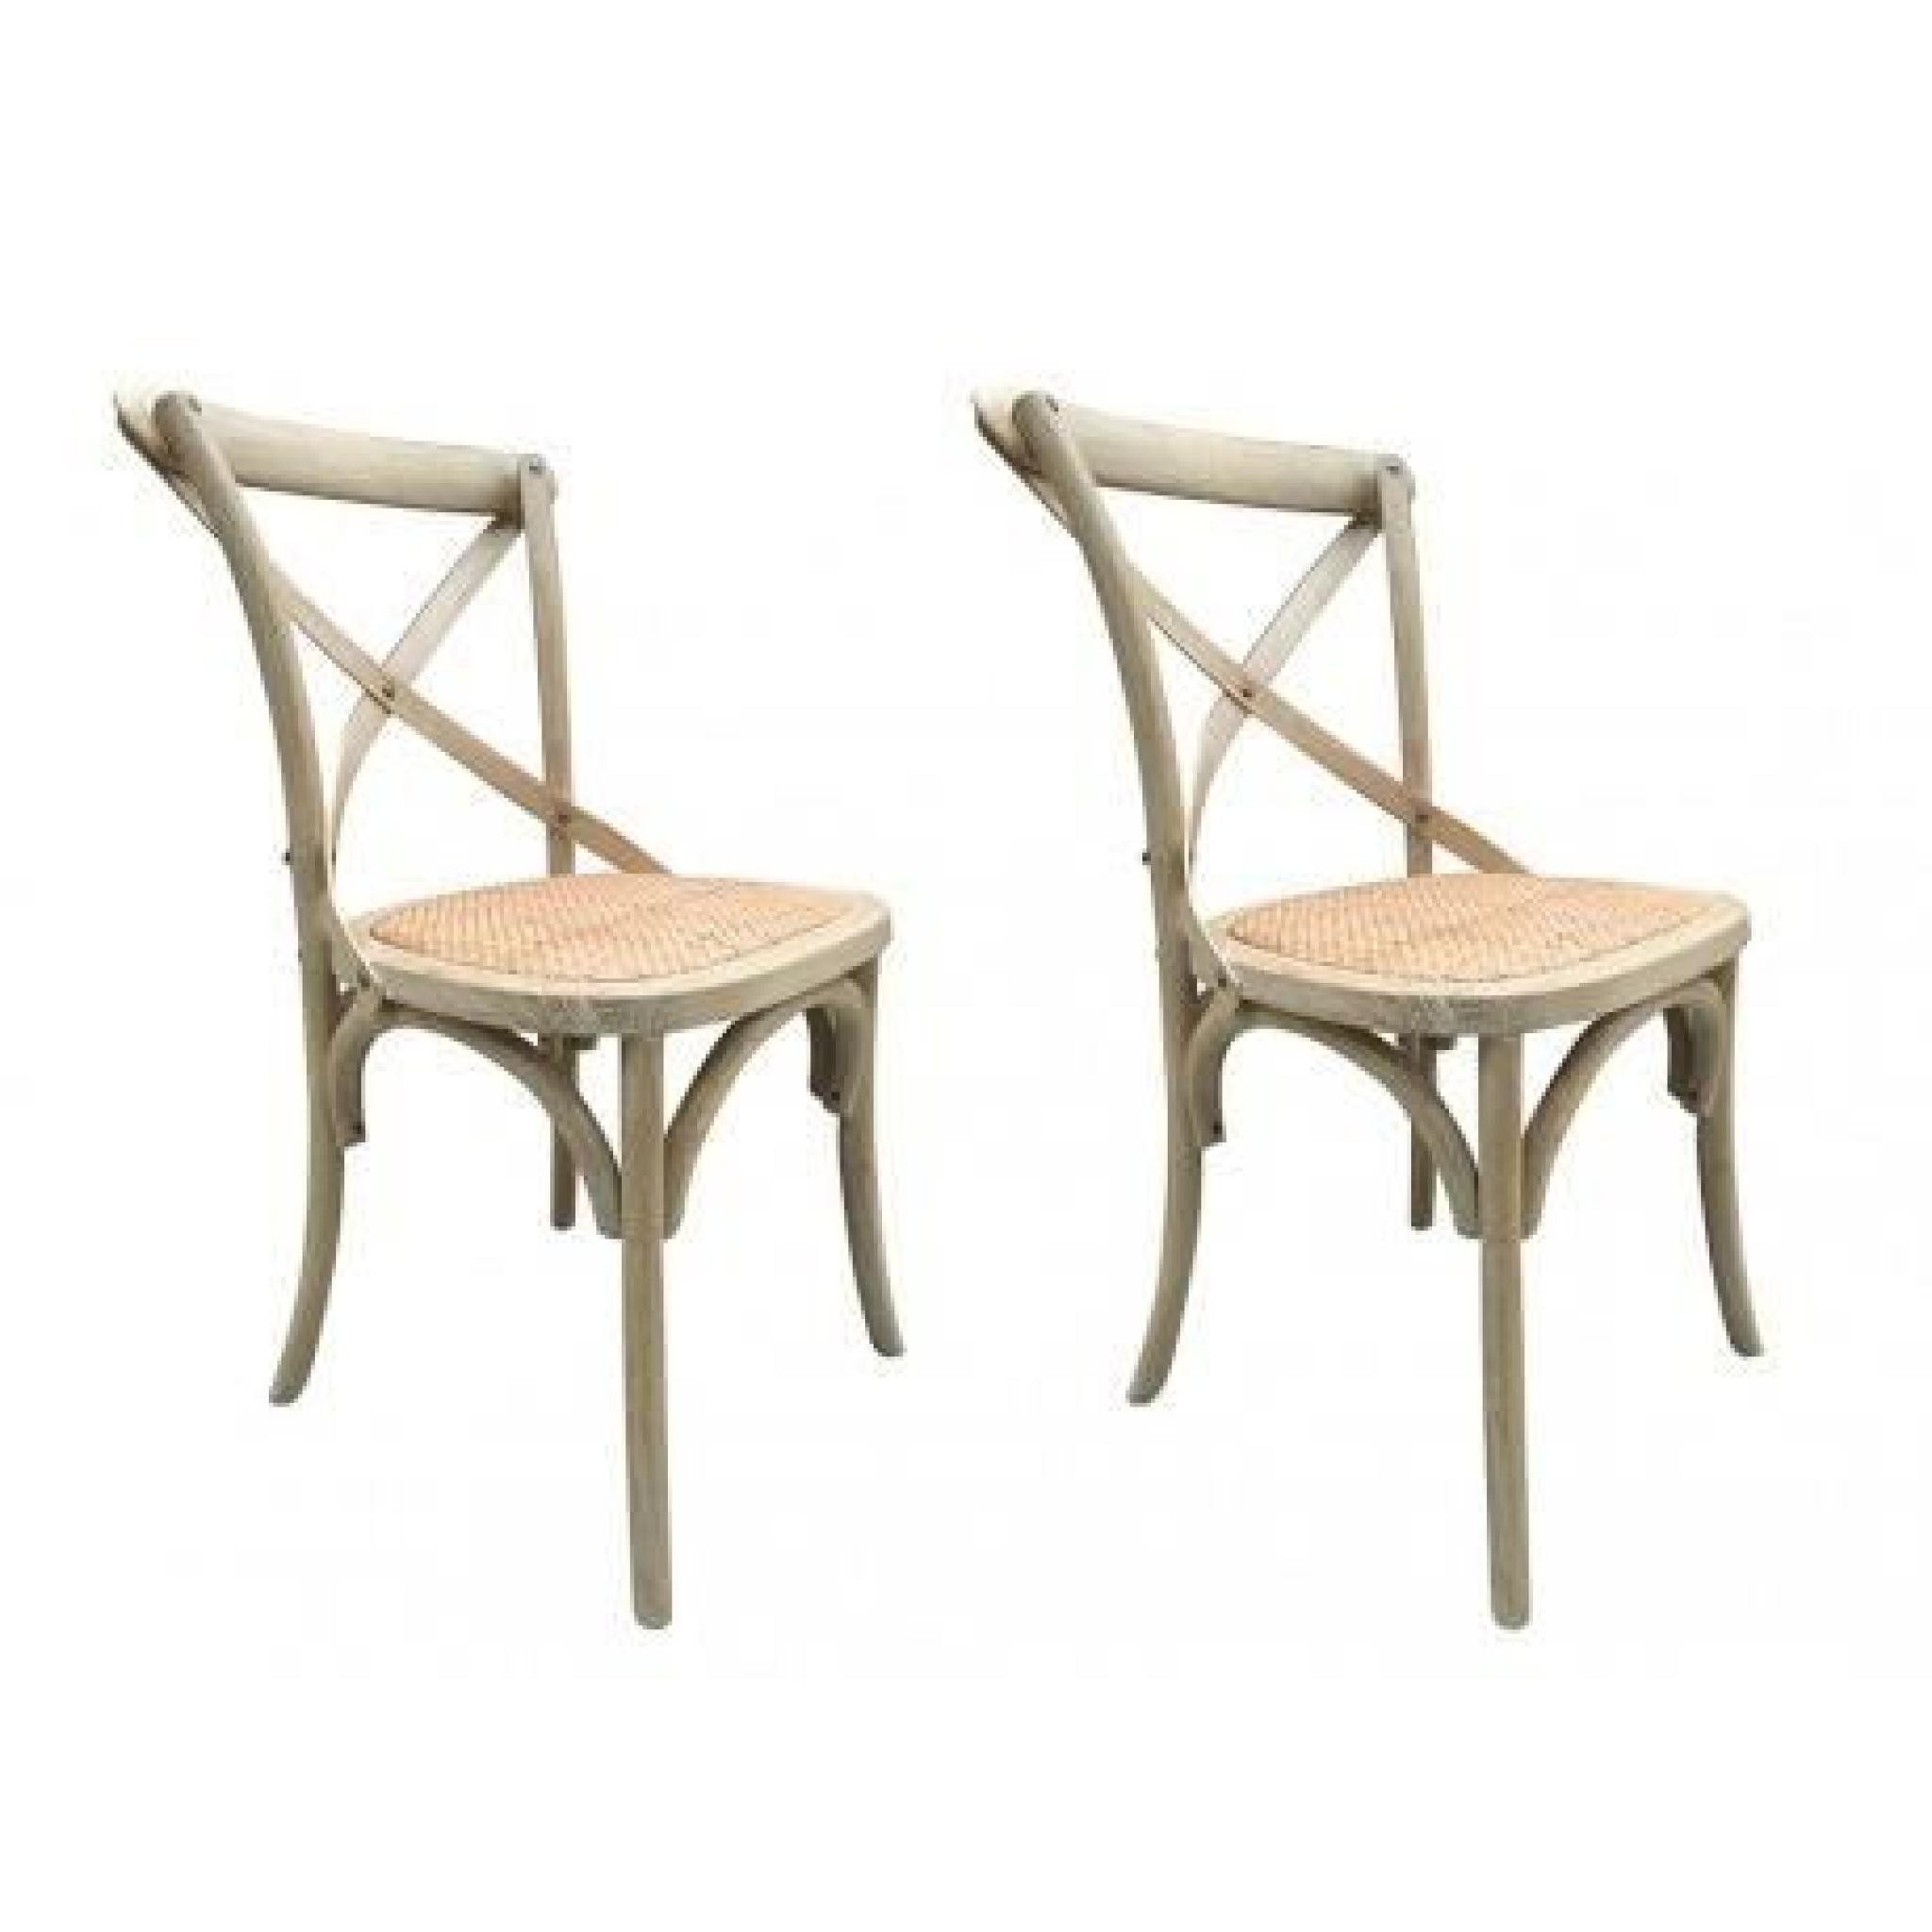 lot de 2 chaises panya bois et assise en rotin naturel achat vente chaise salle a manger. Black Bedroom Furniture Sets. Home Design Ideas